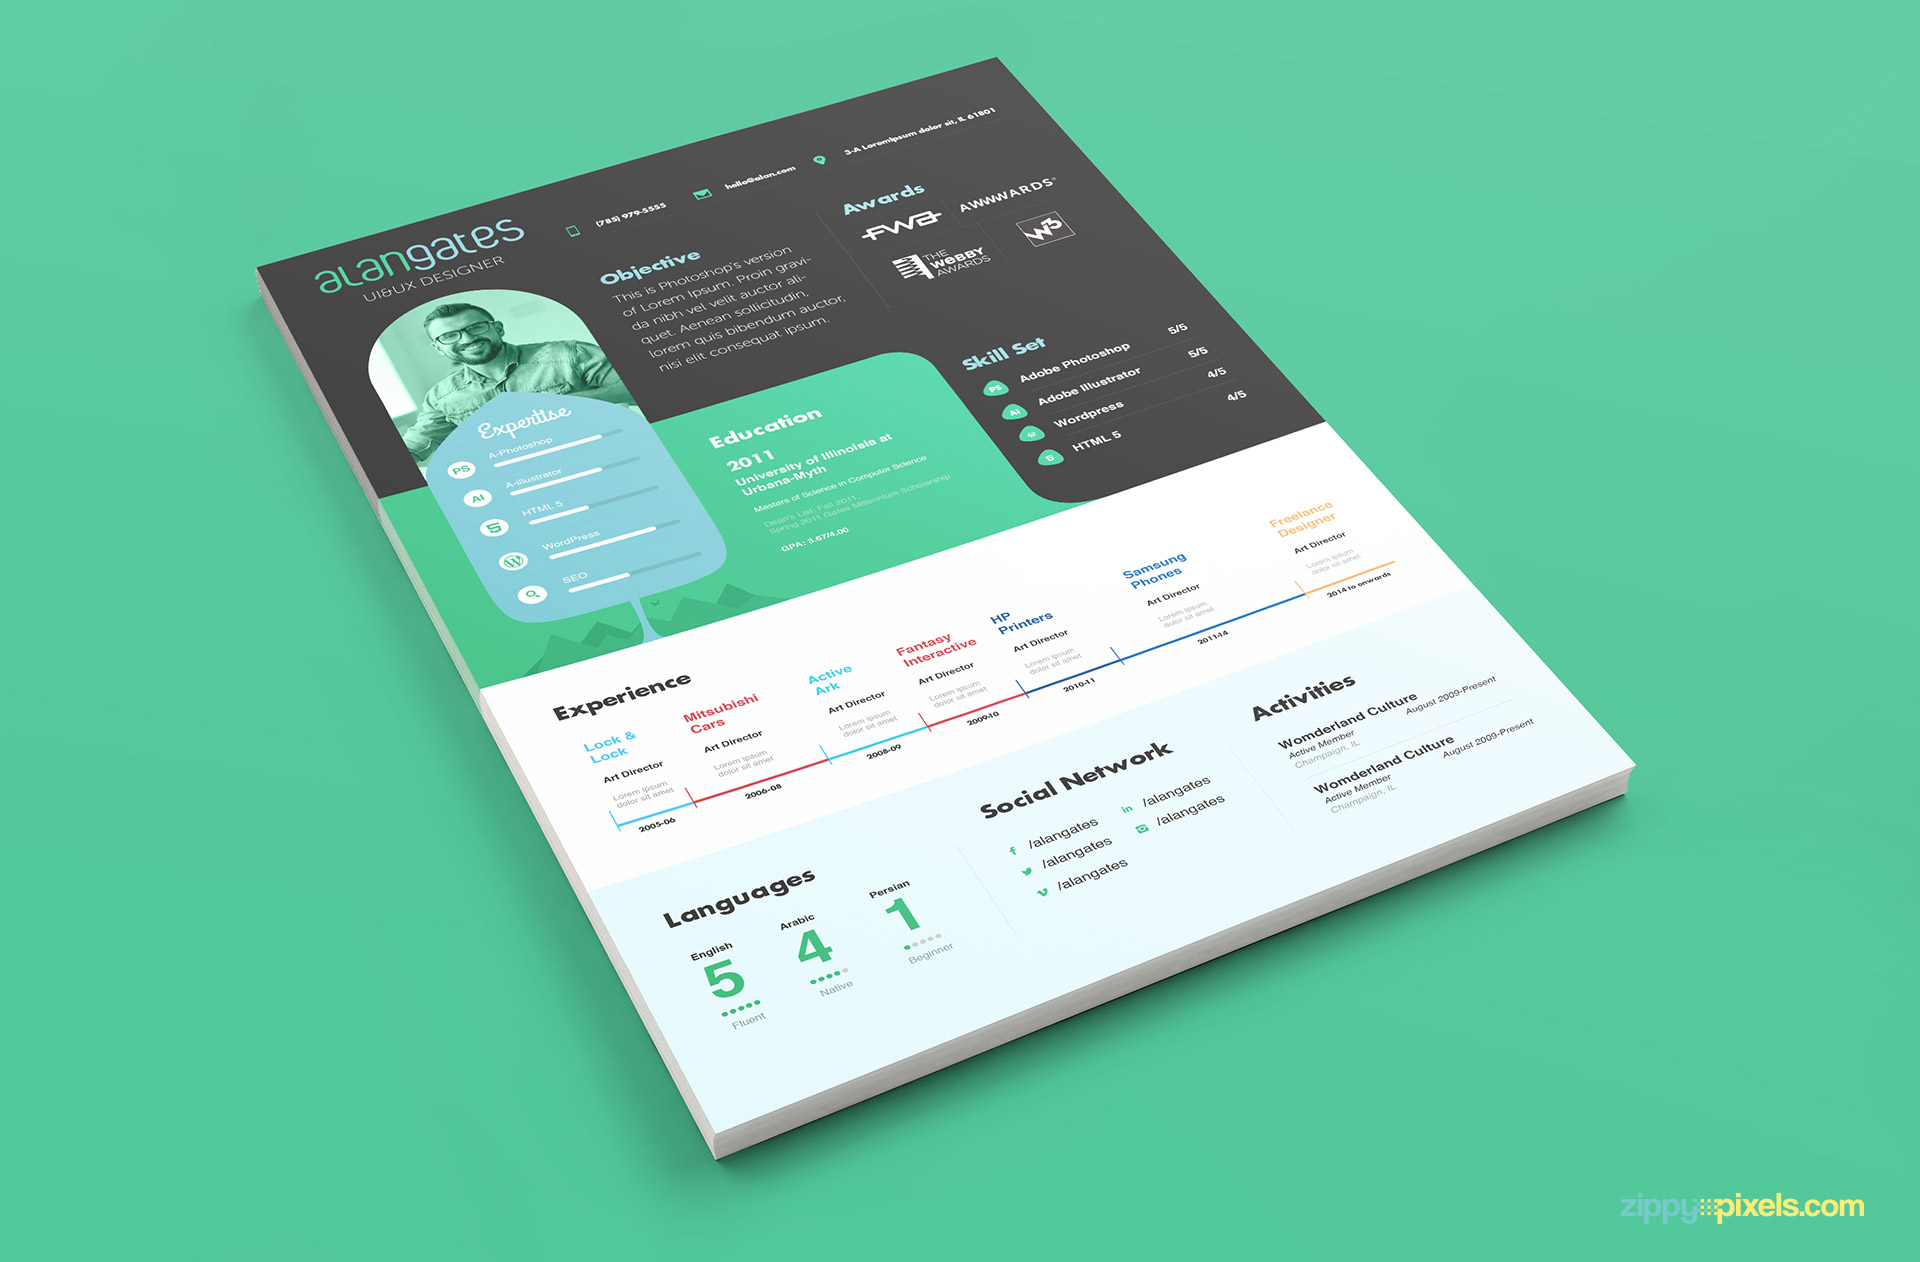 Modern PSD Resume Template in Green and Black Color